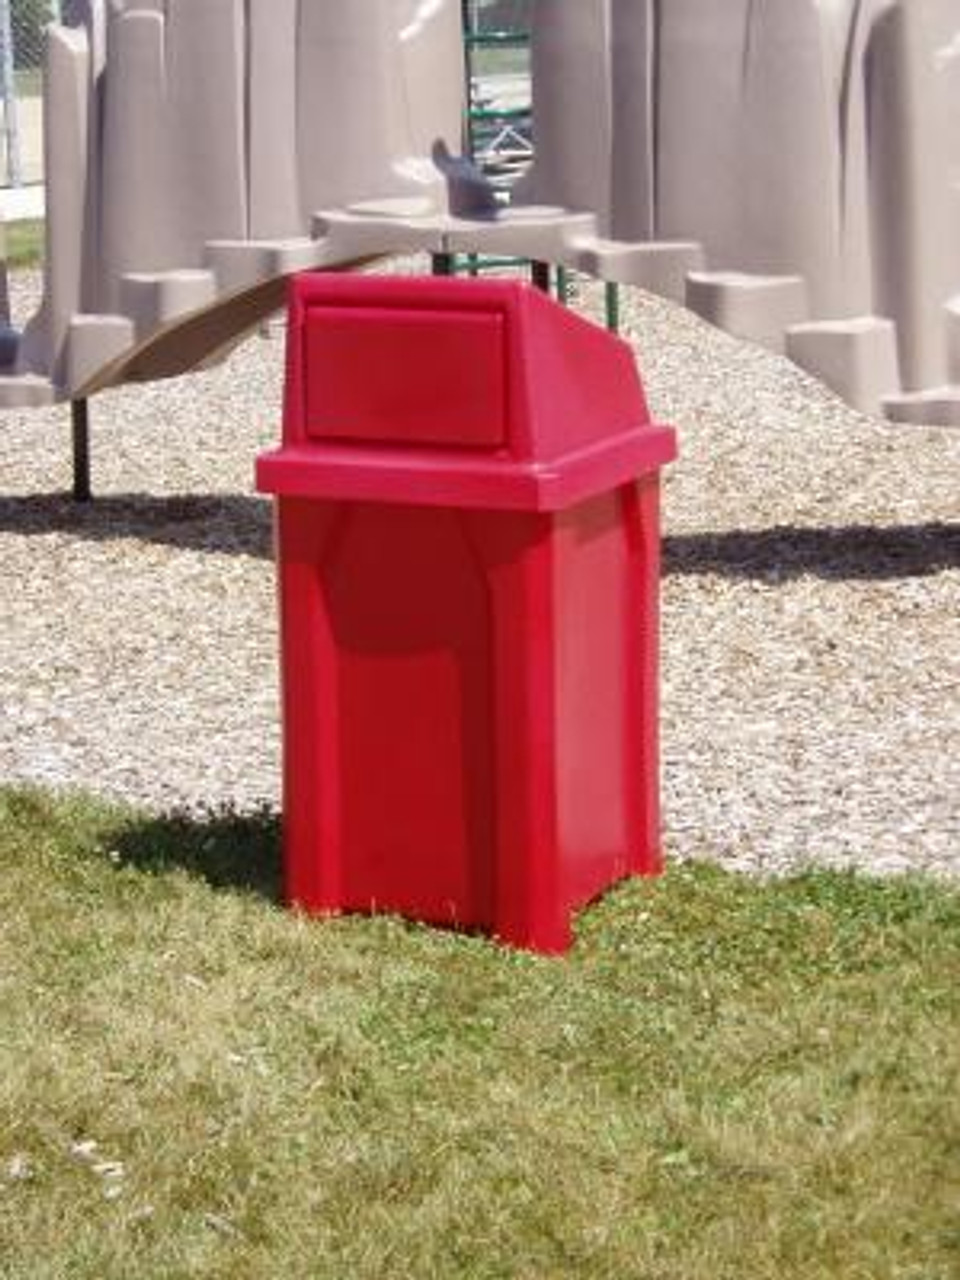 32 gallon kolor can indoor outdoor trash can s7801a 7 lid options 13 colors